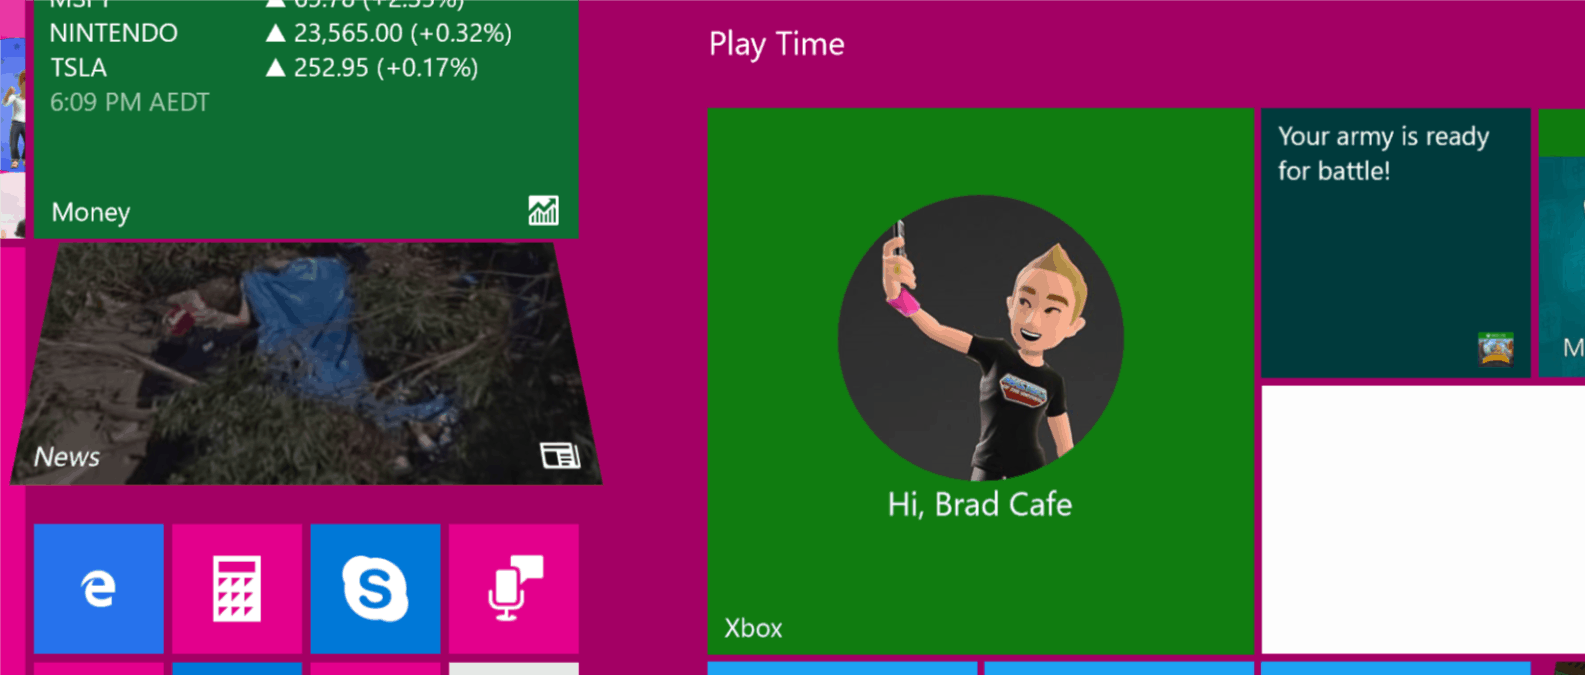 Windows 10's Live Tiles can update with new information and images